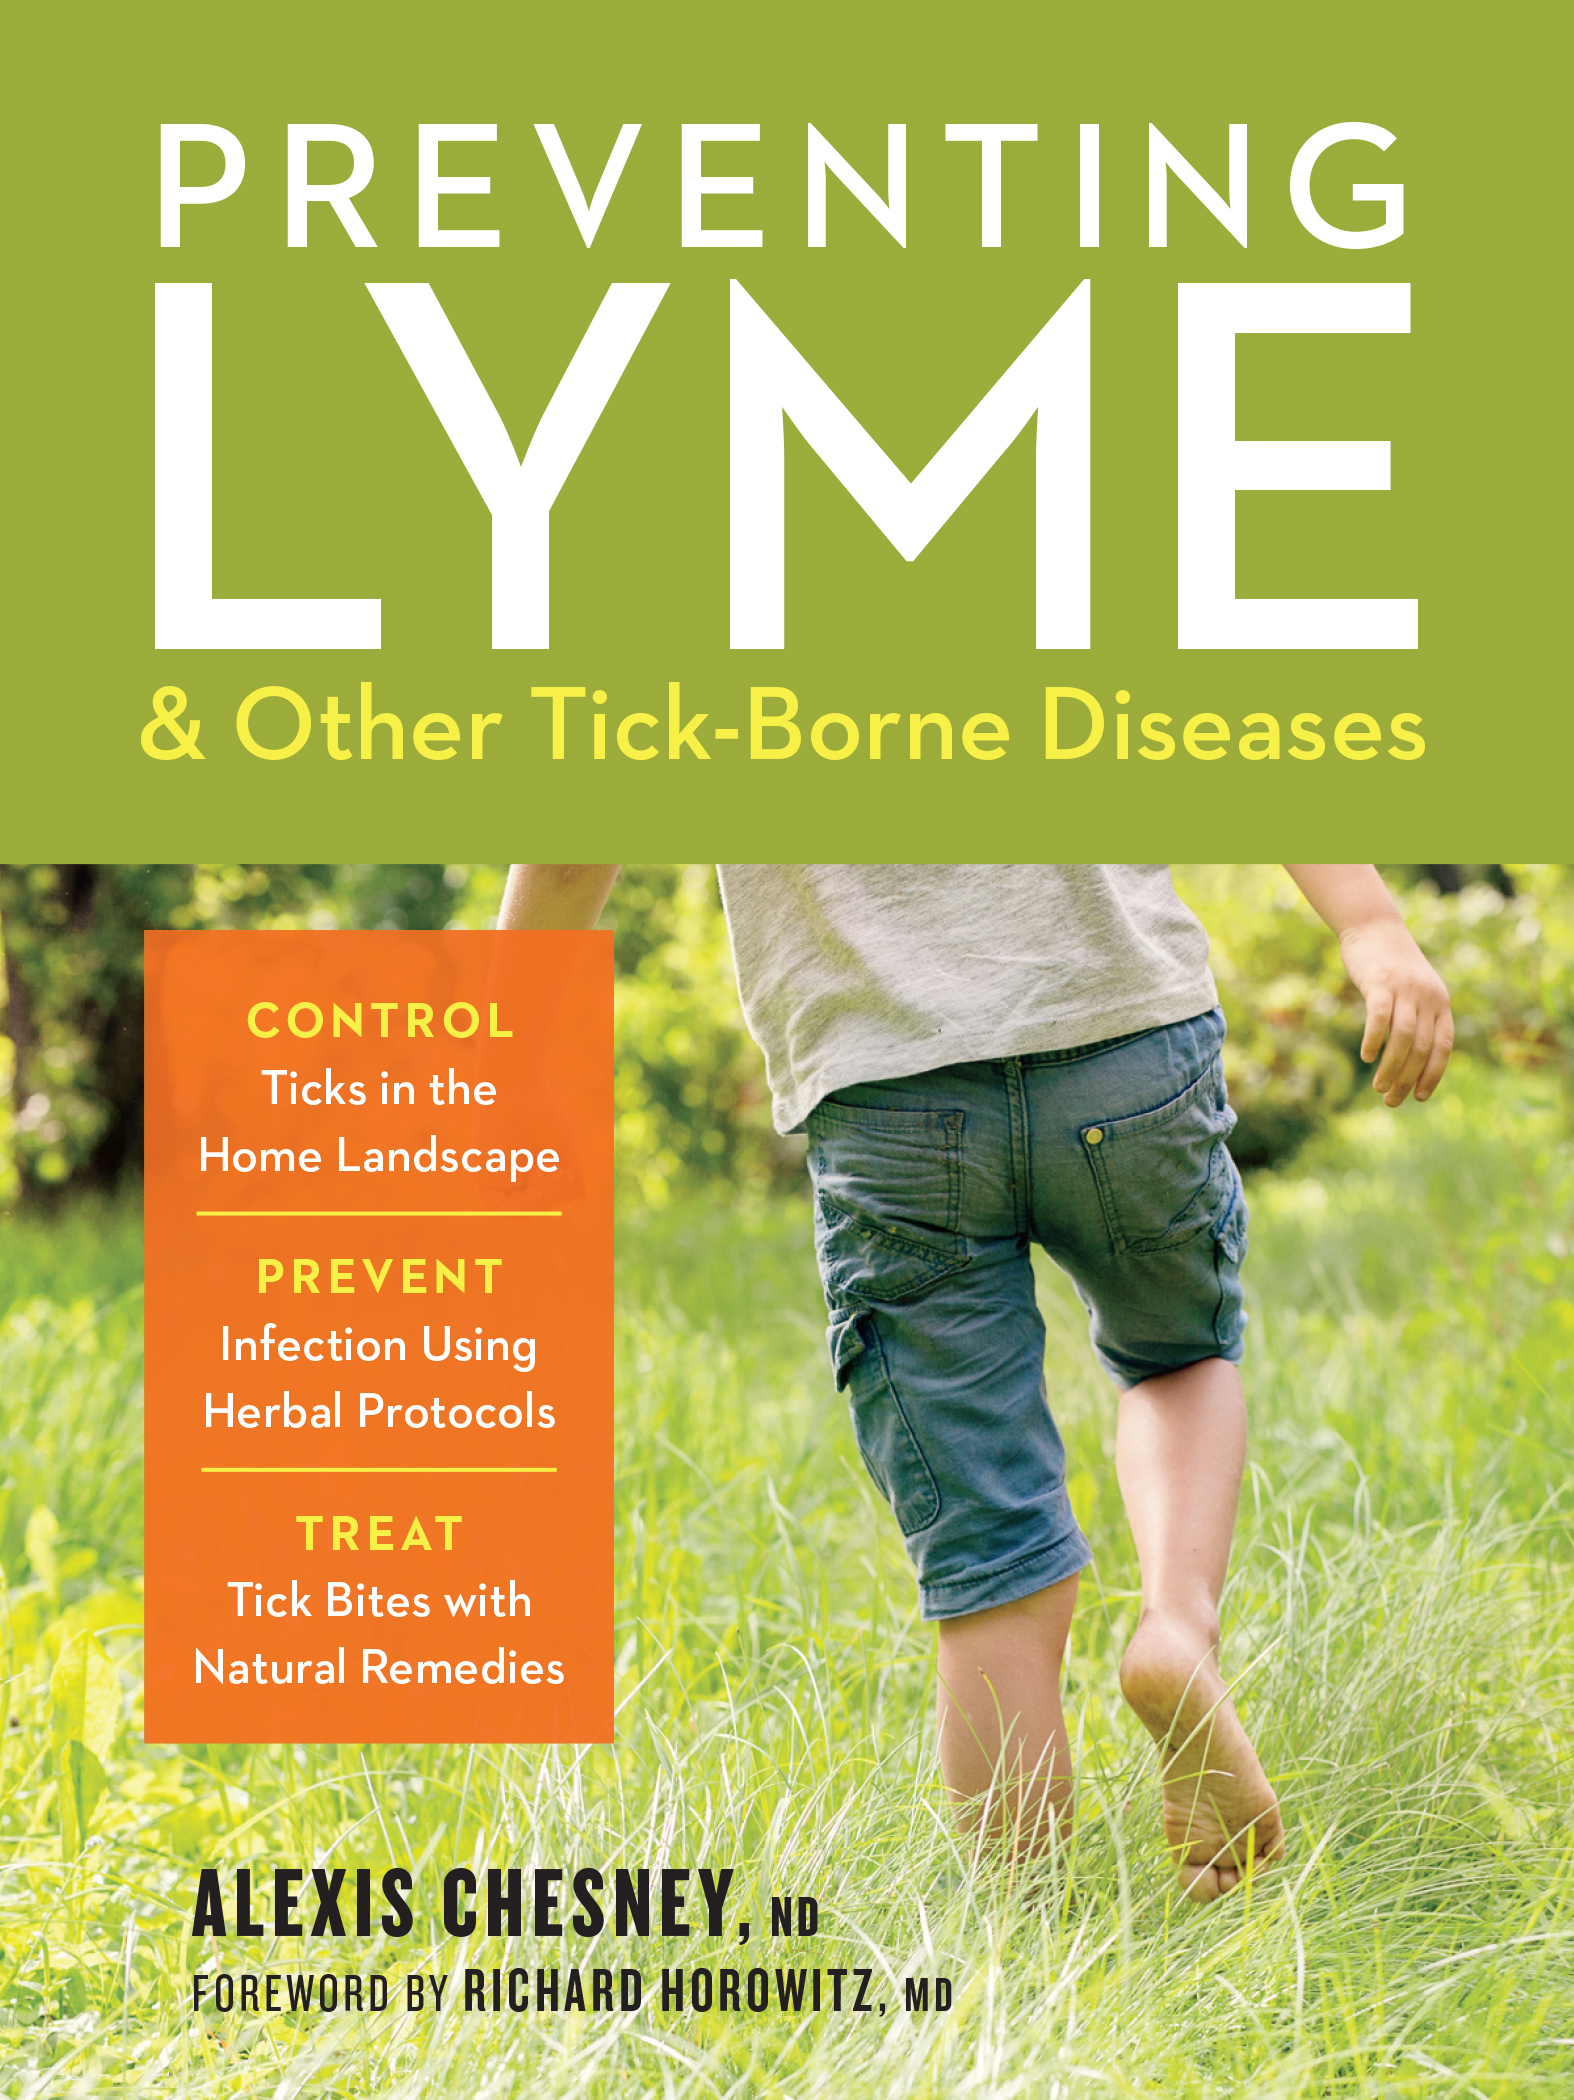 Preventing Lyme & Other Tick-Borne Diseases Control Ticks in the Home Landscape; Prevent Infection Using Herbal Protocols; Treat Tick Bites with Natural Remedies - Alexis Chesney